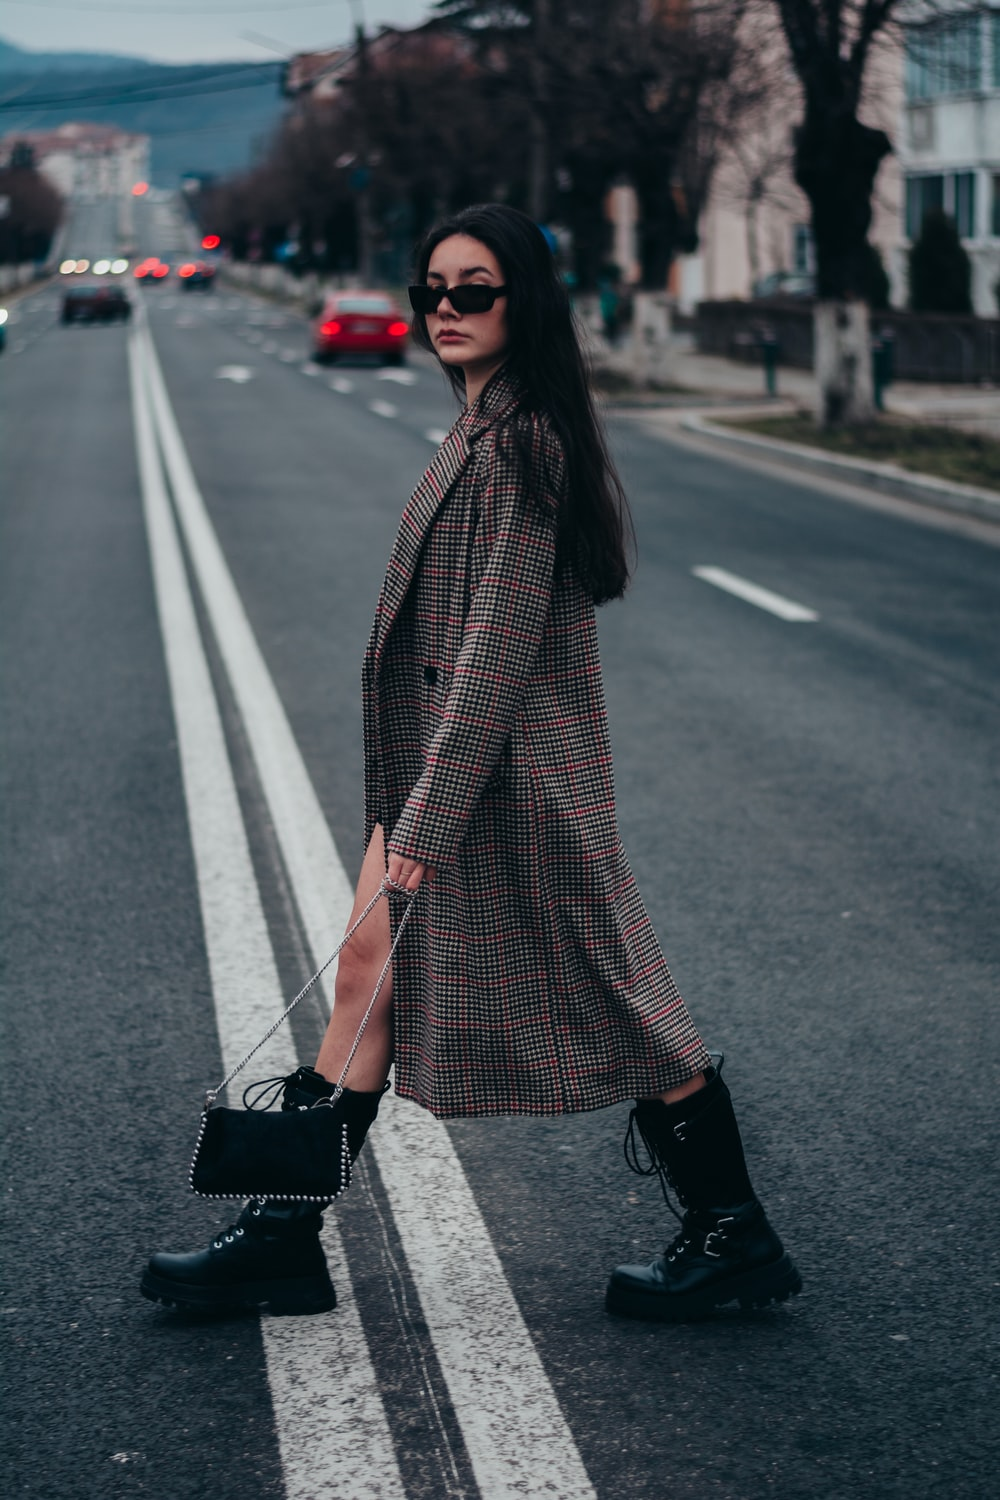 woman in black and white scarf standing on the road